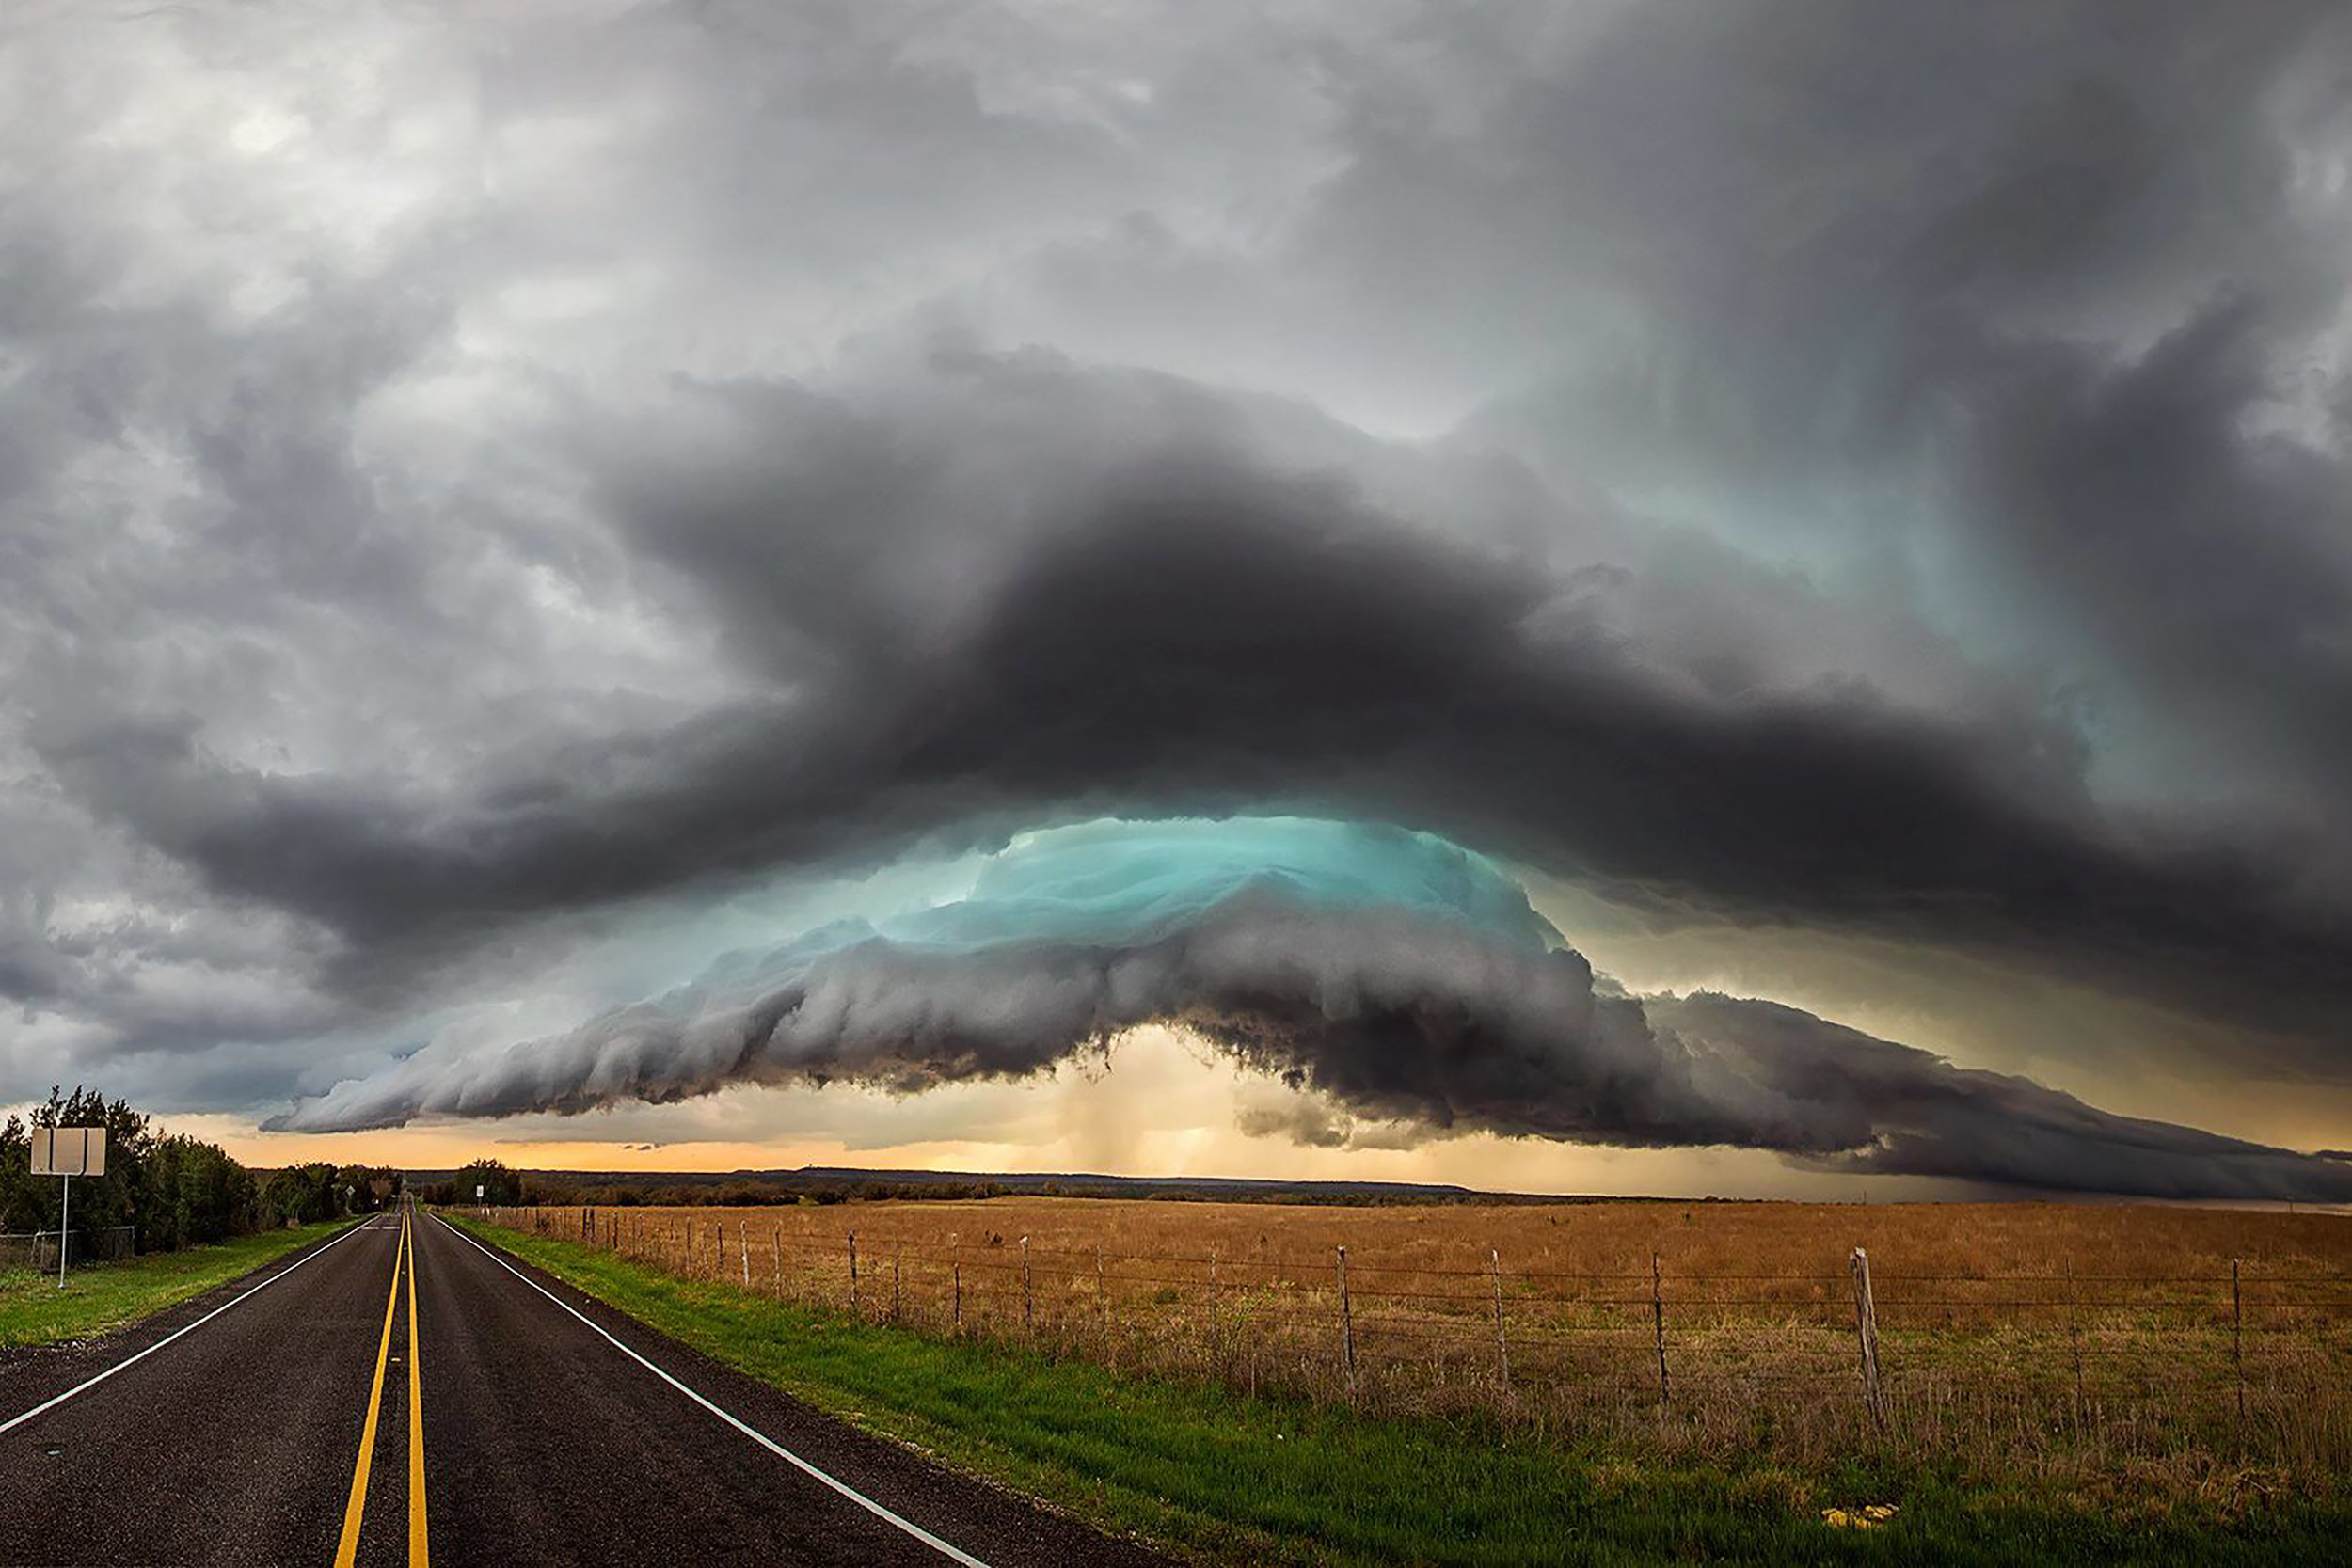 First storm of 2016 produced an incredibly photogenic, glowing green shelf cloud over Evant, Tx.